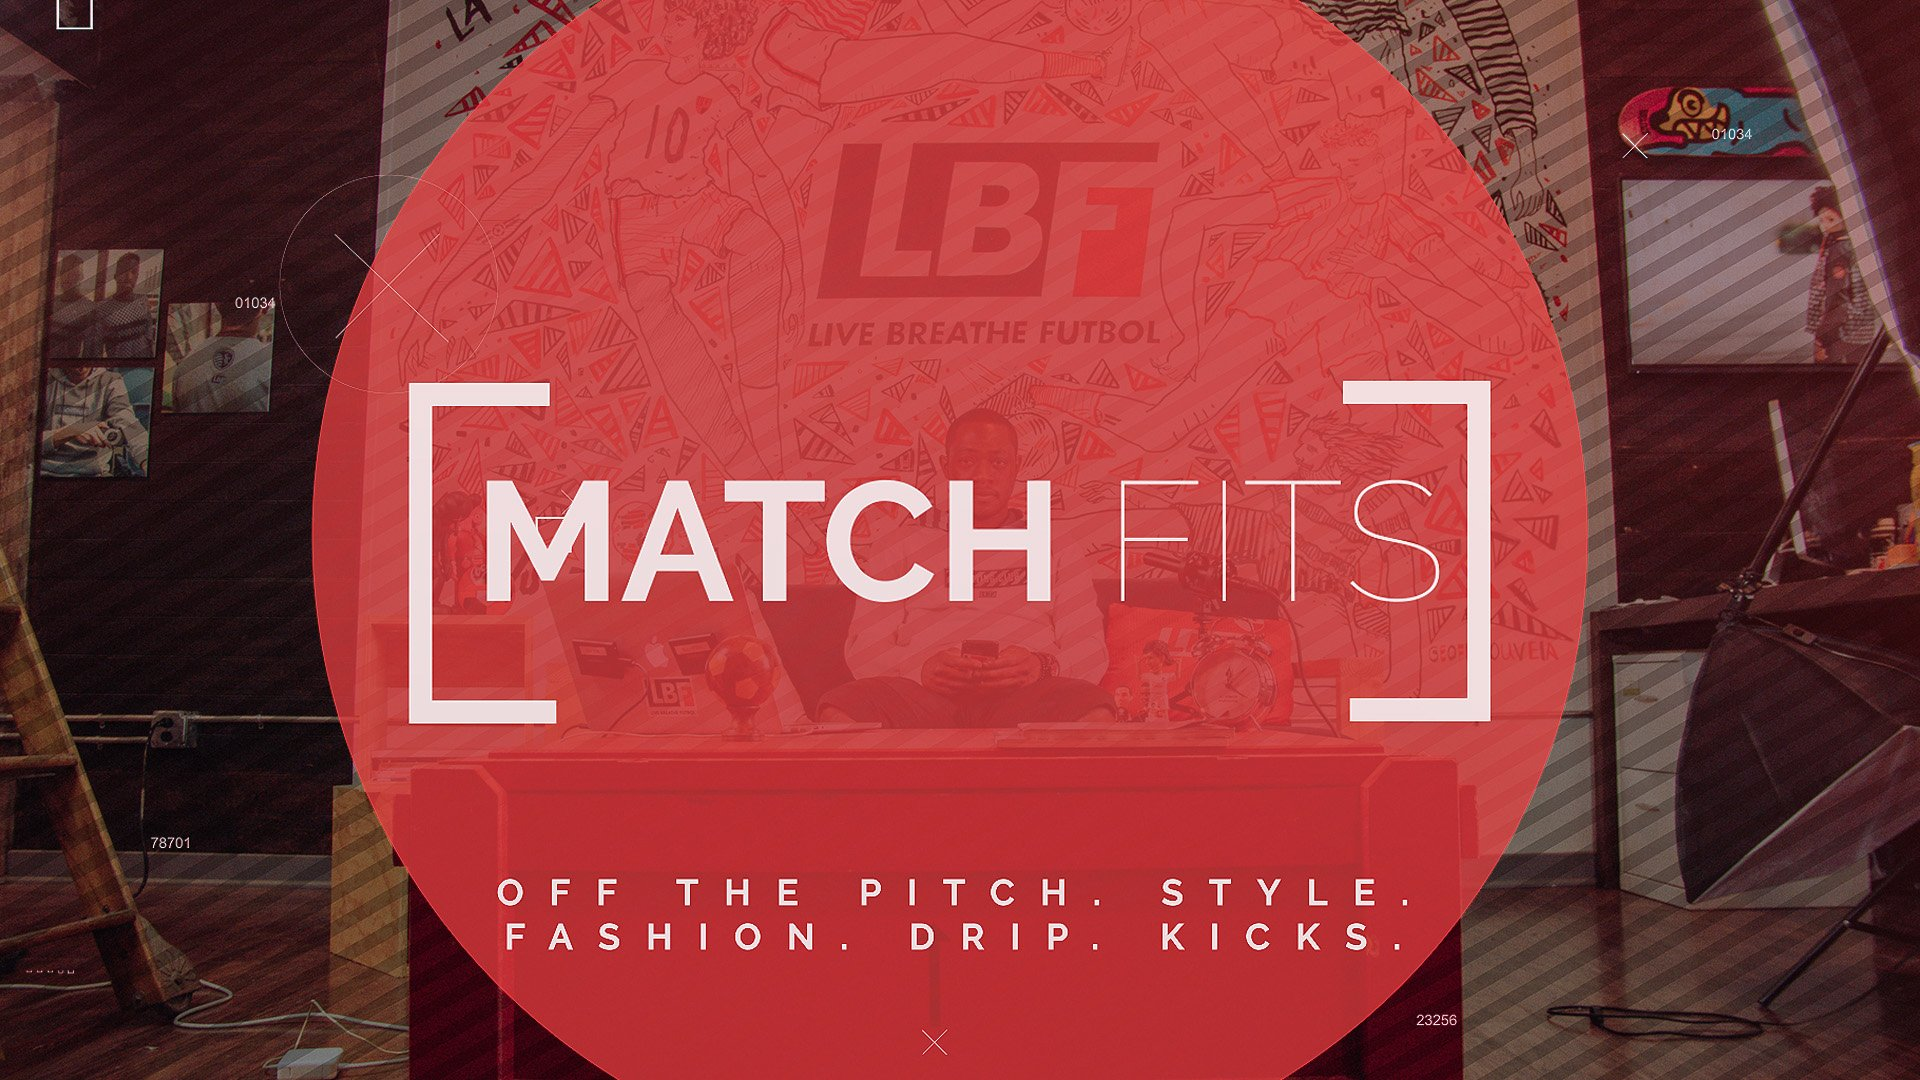 match fits live breathe futbol LBF cover image